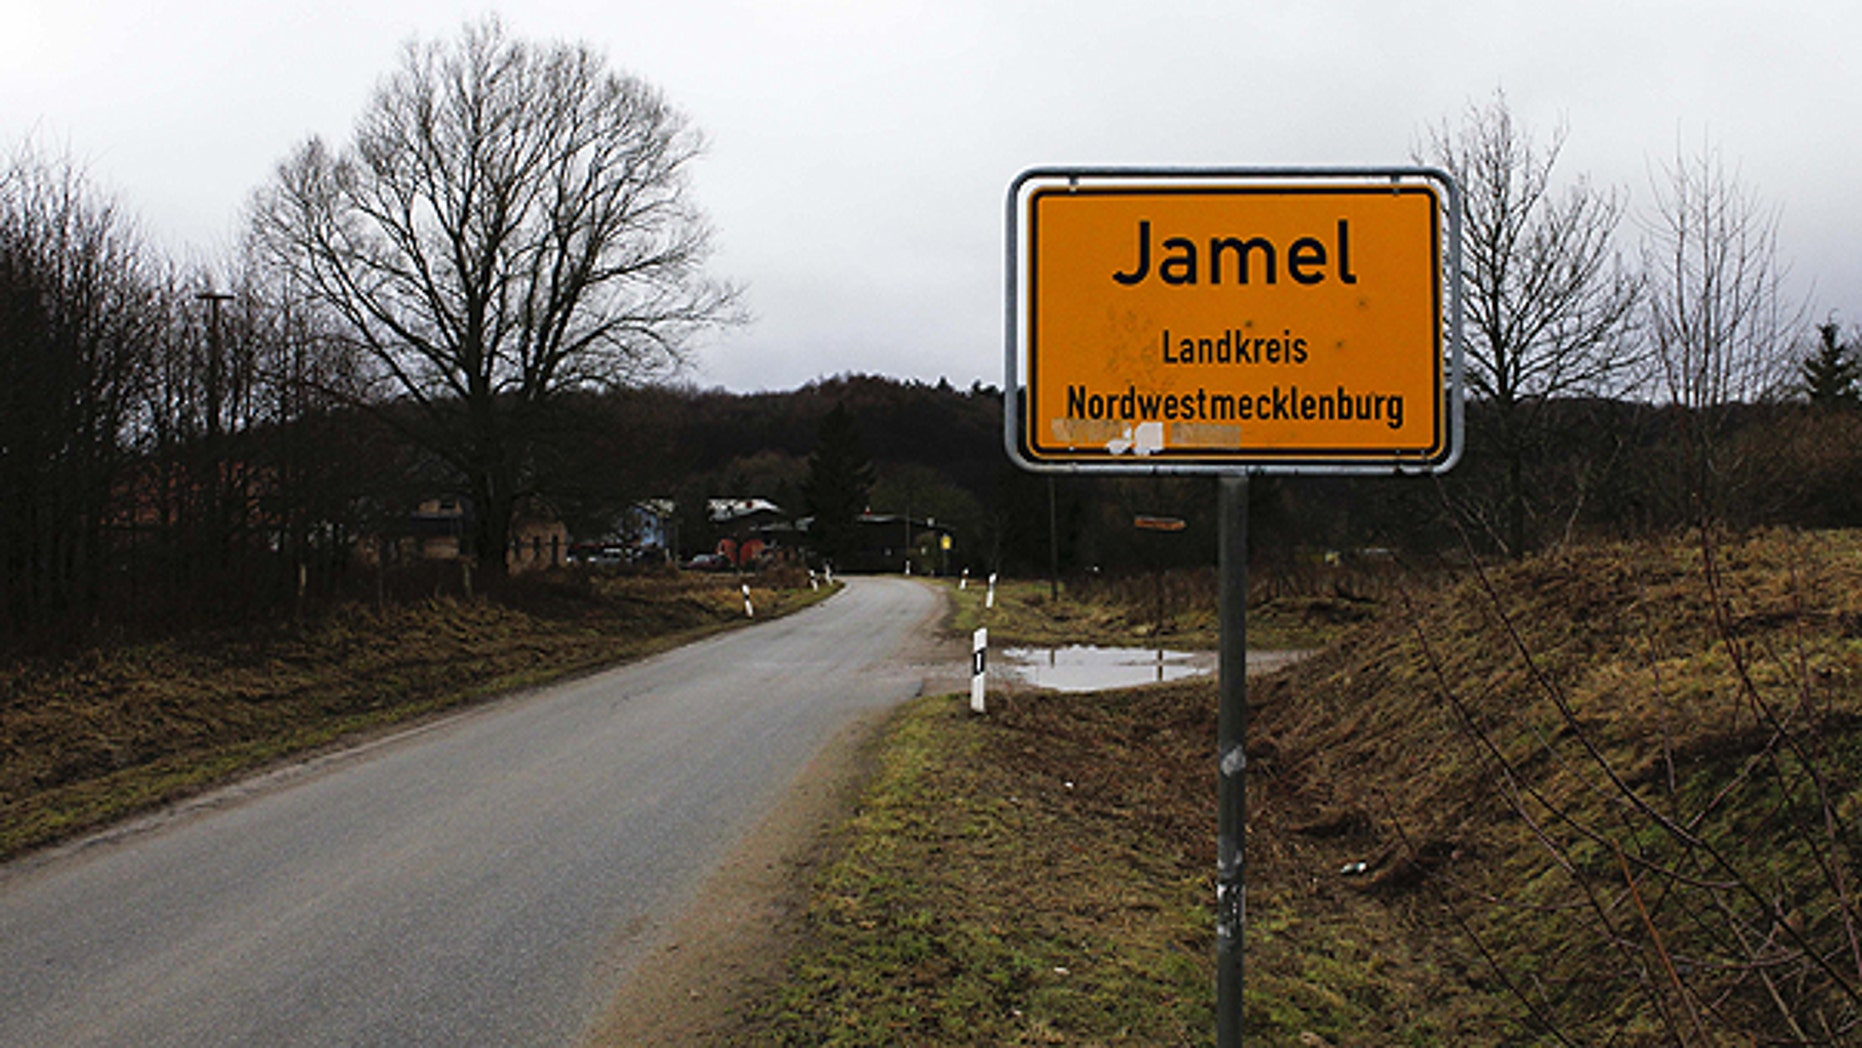 Jan. 25: The drive in to the village of Jamel, 165 miles north west of Berlin in the state Mecklenburg-Western Pomerania, Germany is pictured.